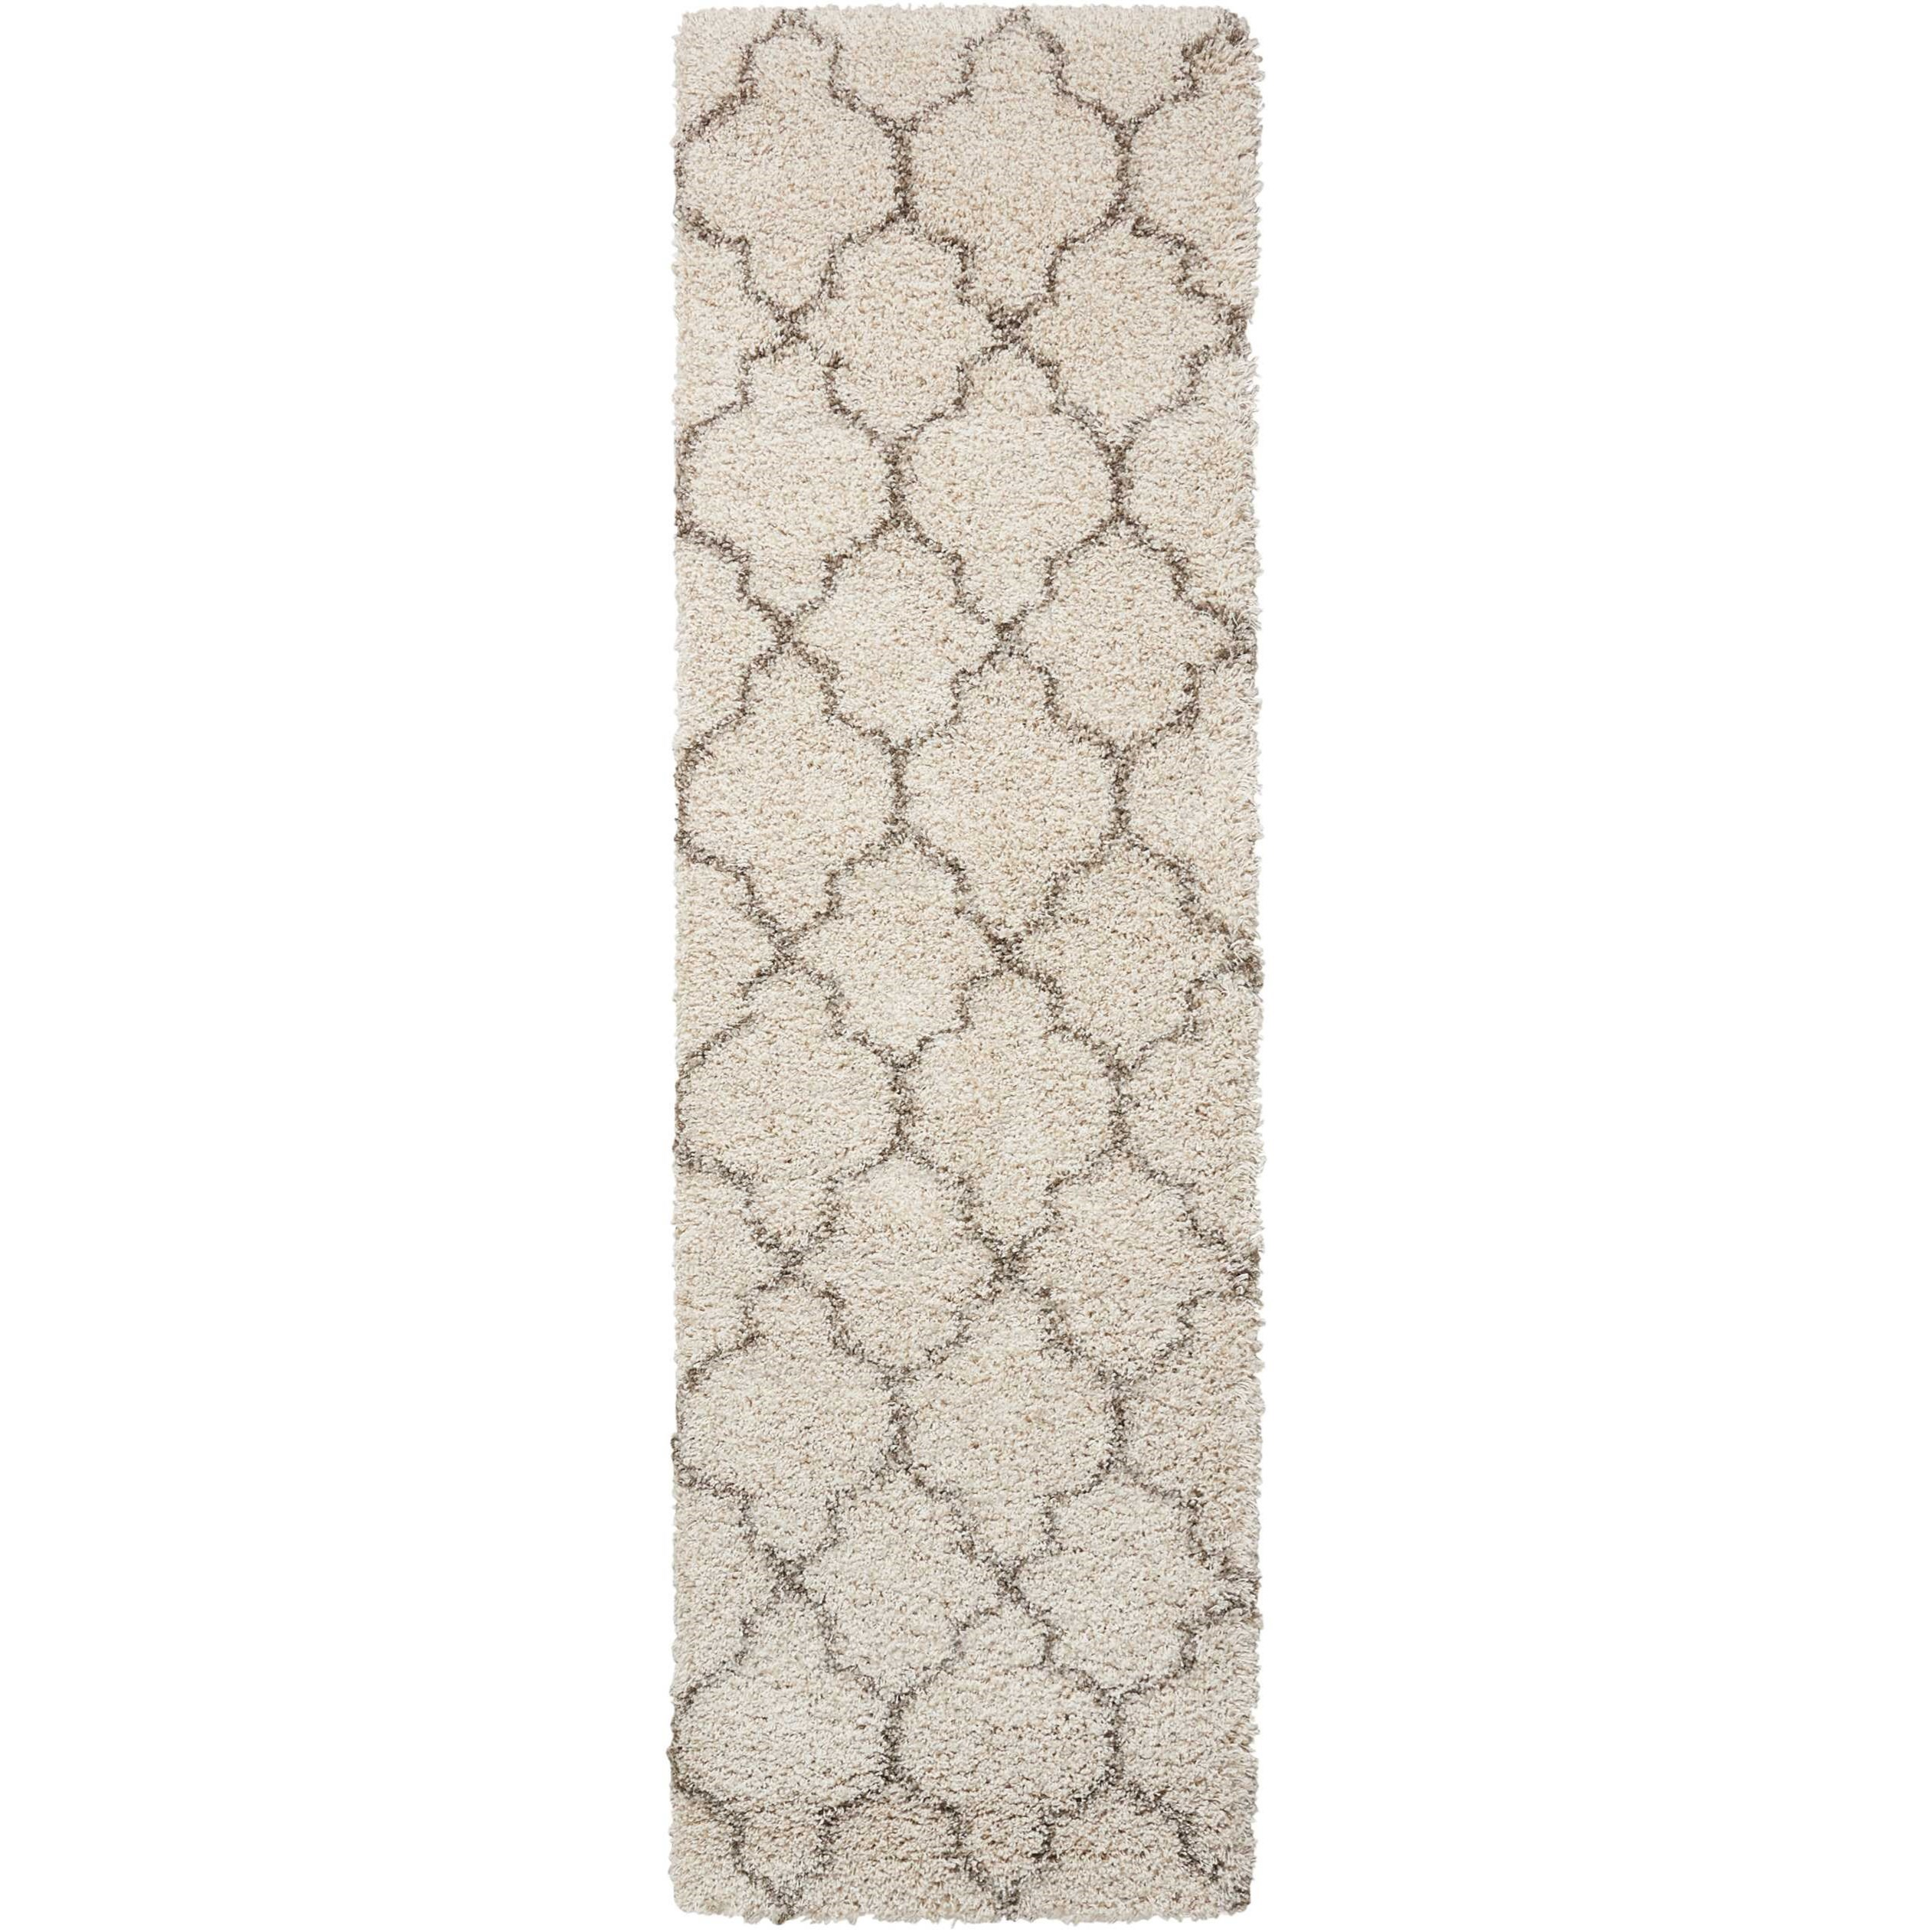 Amore Amore AMOR2 Beige 8' Runner  Hallway Rug by Nourison at Home Collections Furniture